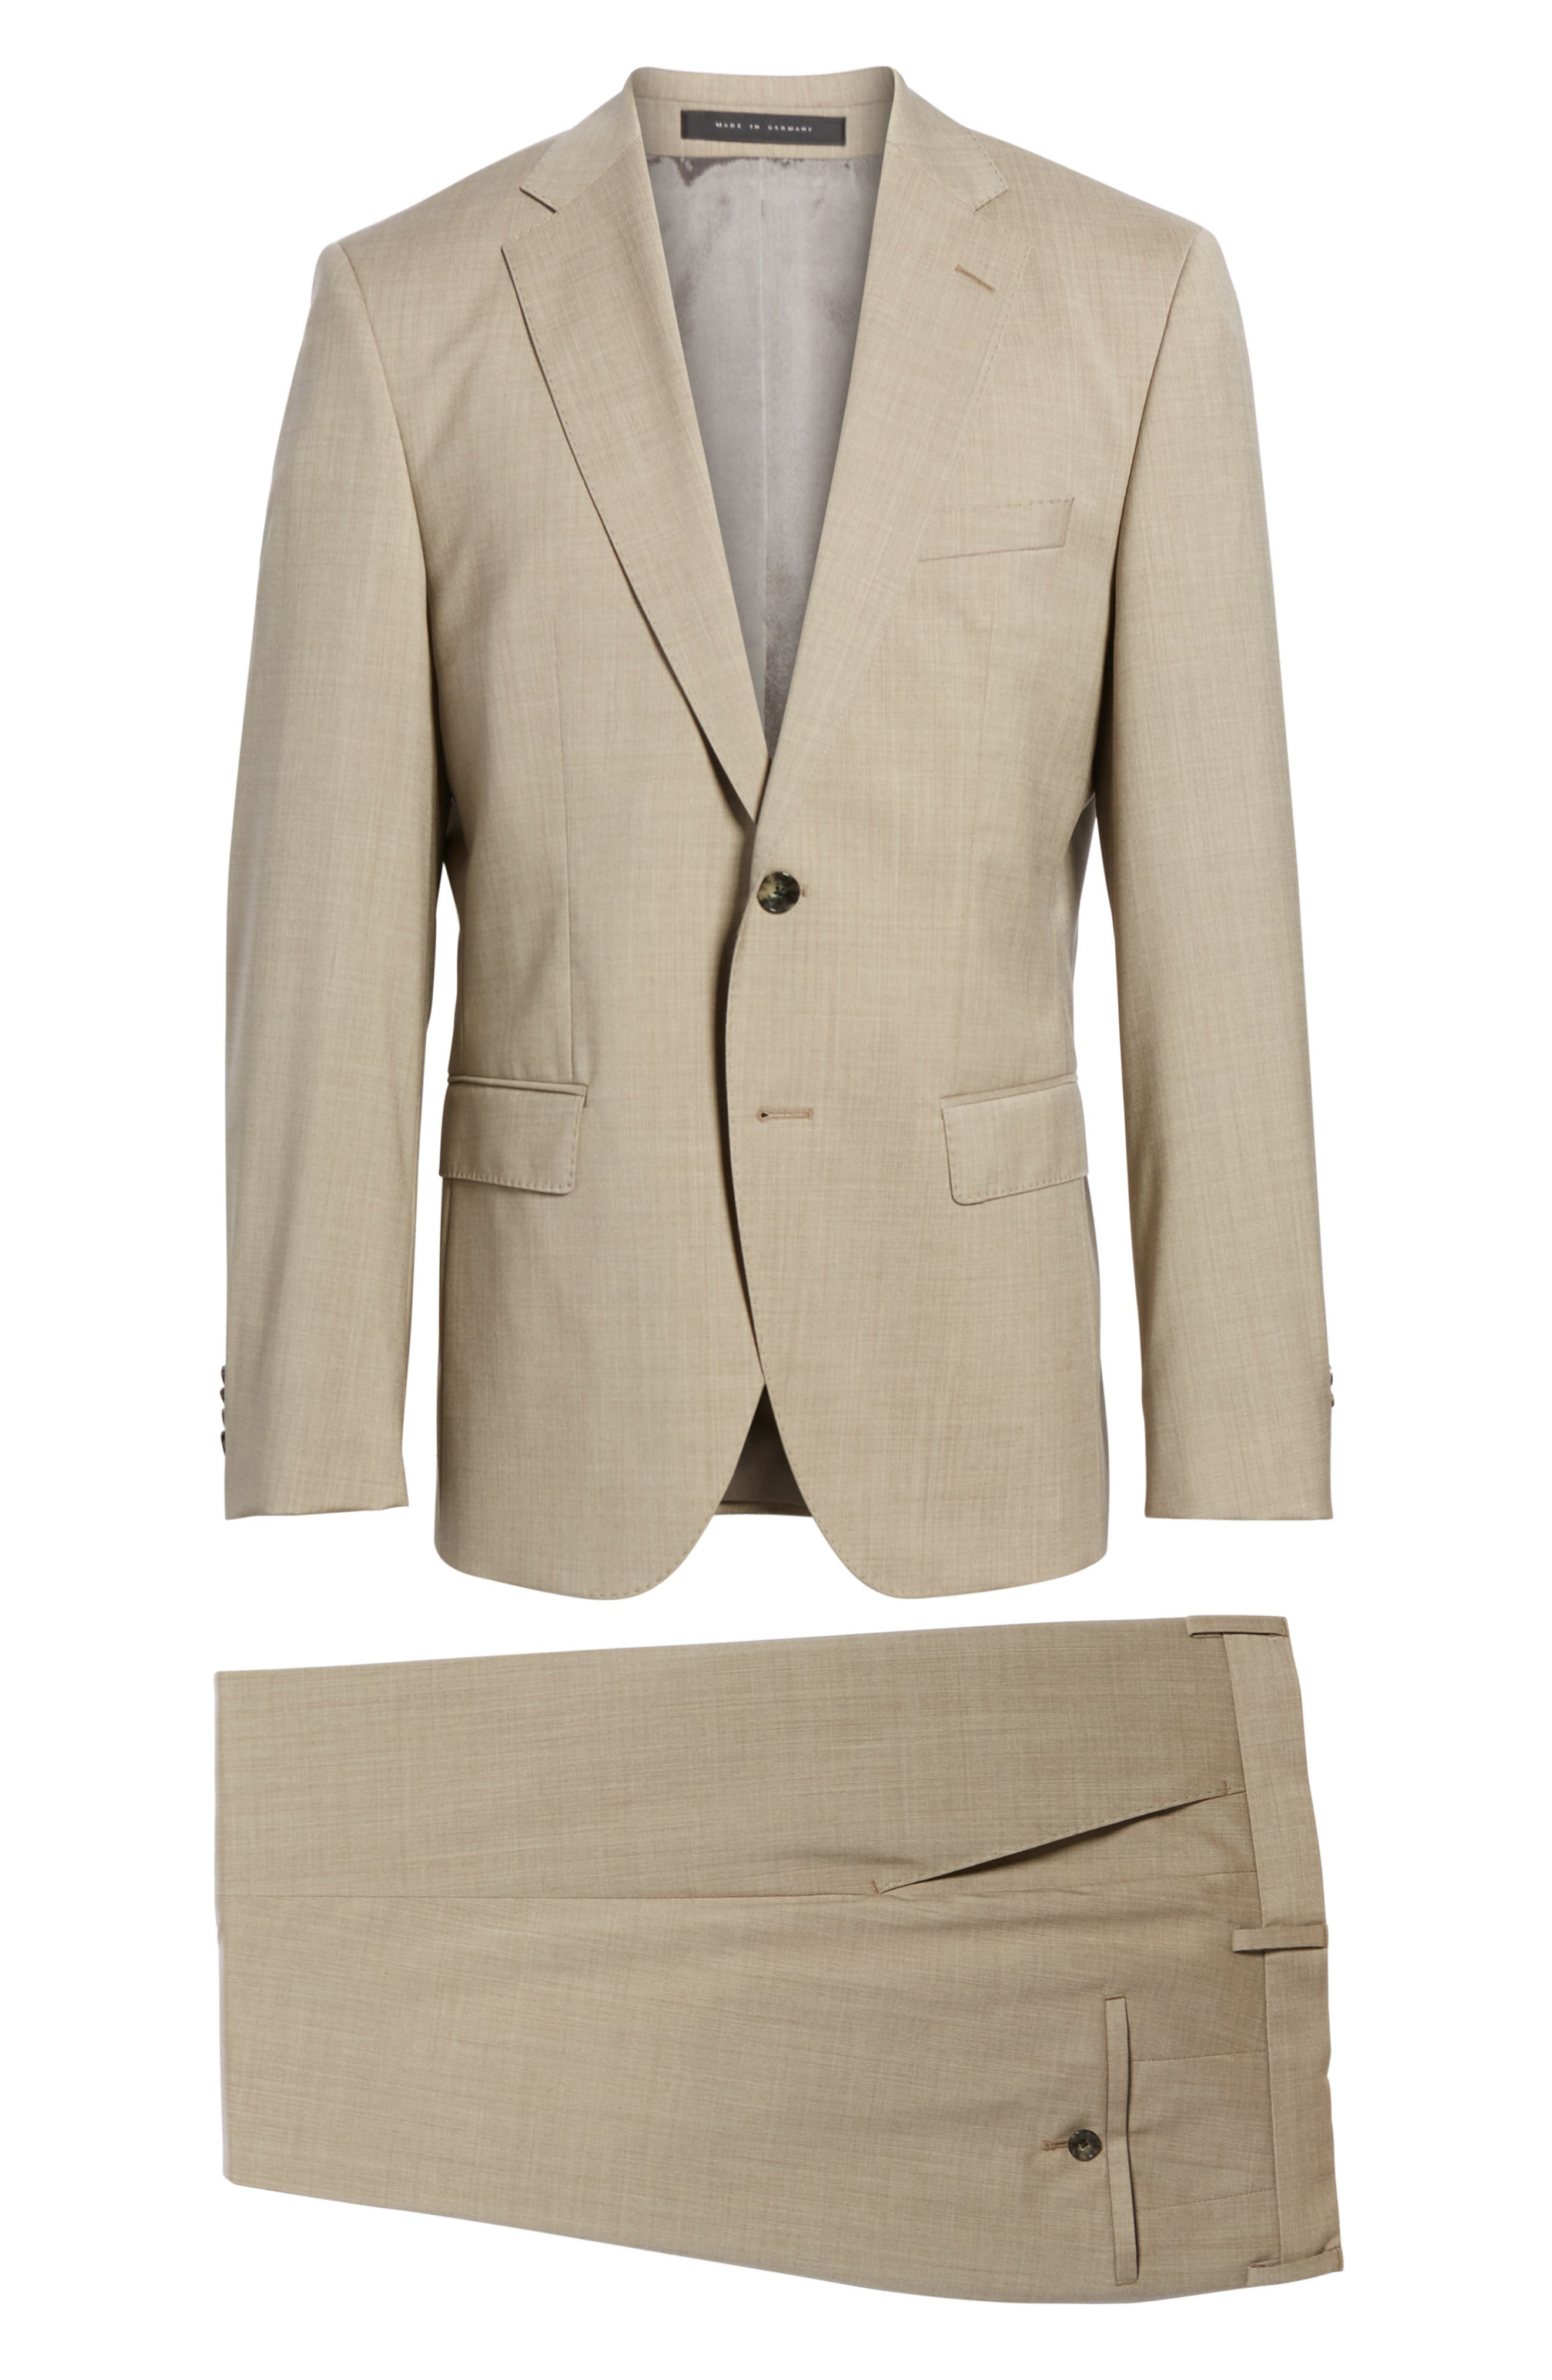 Johnstons/Lenon Classic Fit Solid Wool Suit,                             Alternate thumbnail 8, color,                             Medium Beige